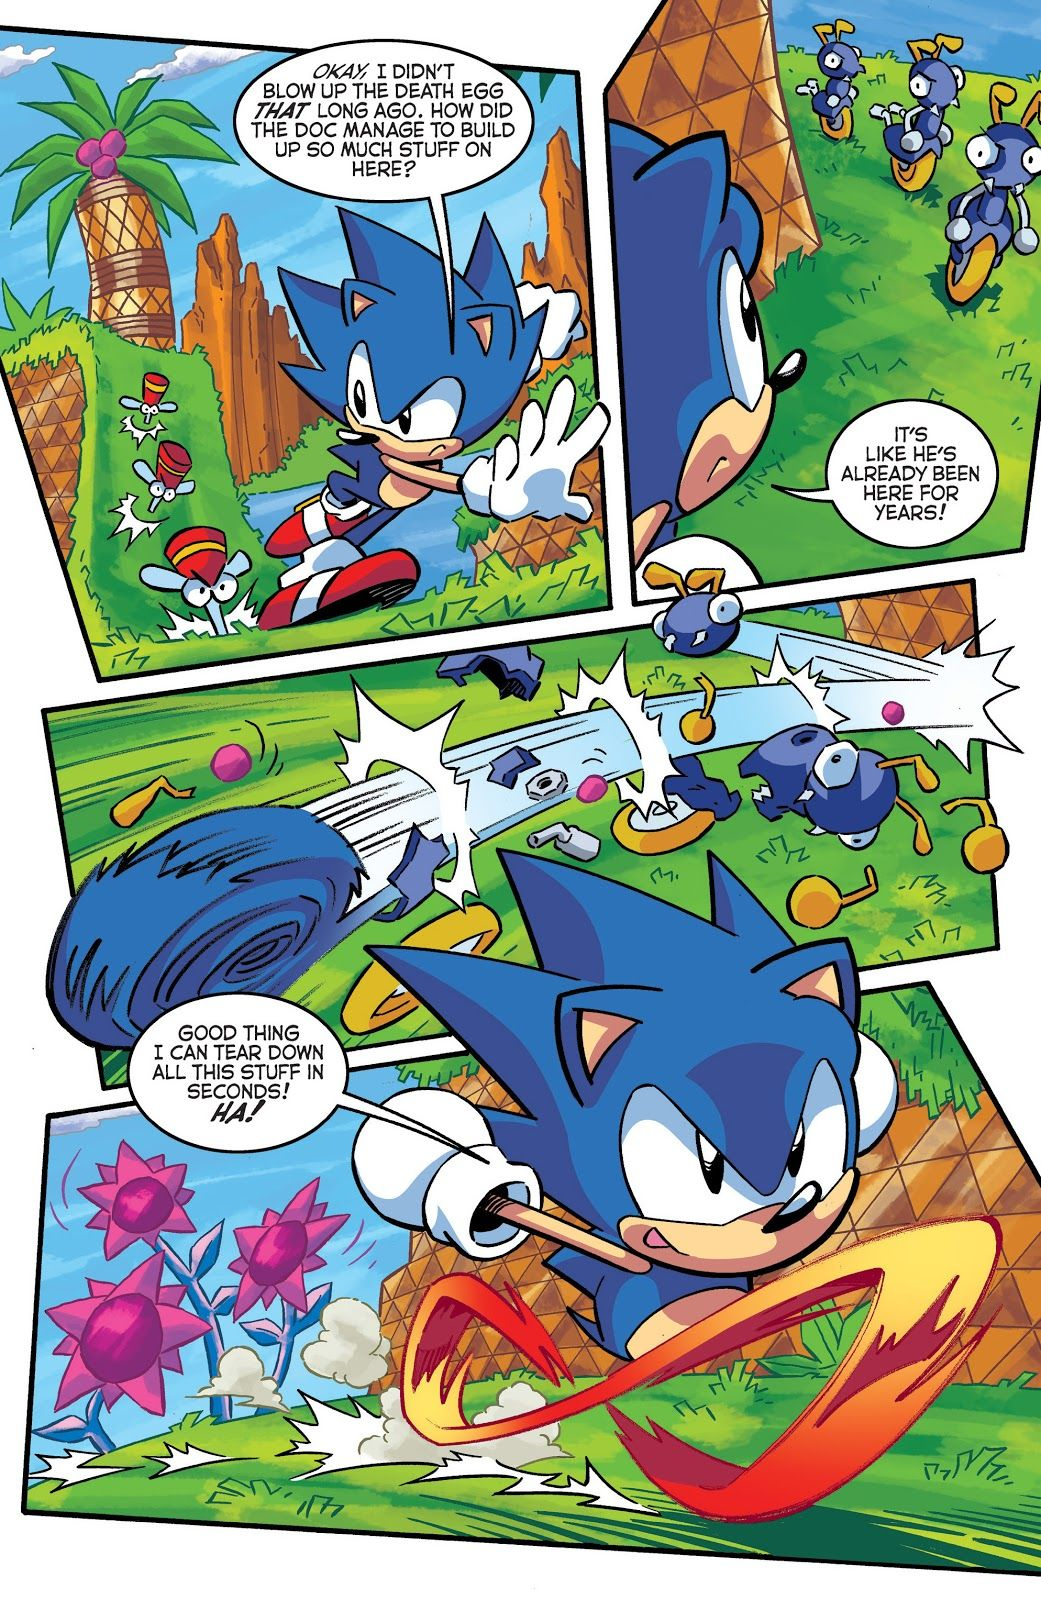 Sonic The Hedgehog 1993 Issue 290 Read Sonic The Hedgehog 1993 Issue 290 Comic Online In High Quality In 2020 Sonic The Hedgehog Sonic Hedgehog